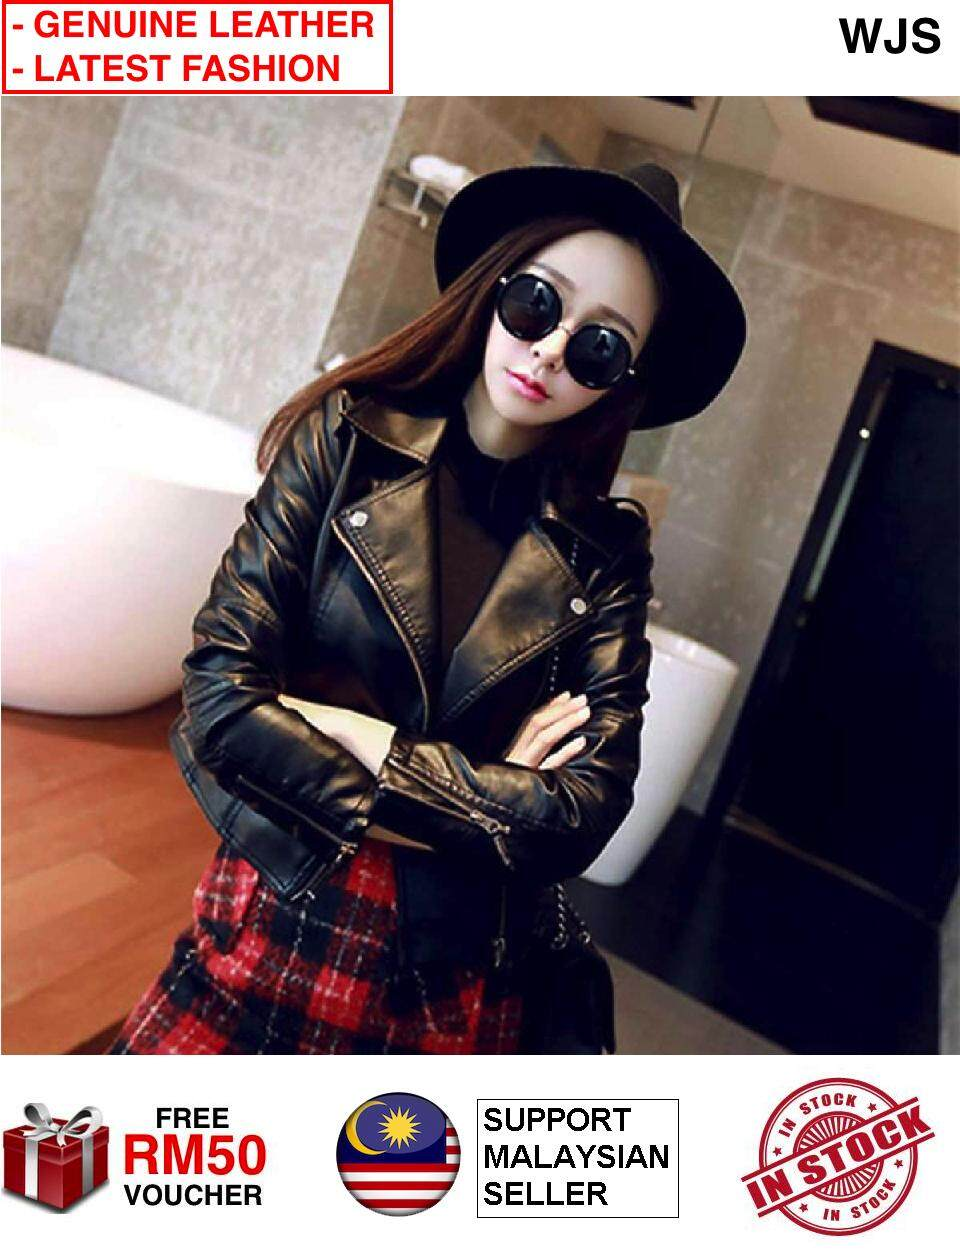 (GENUINE HIGH QUALITY LEATHER) WJS Women Latest Korean Style Slim Fit Woman Leather Jacket Slimfit Leather Jacket Slimfit Jacket Women Jacket Women Coat Women Leather Coat Motorcycle Jacket Winter Jacket Winter Coat BLACK (FREE RM 50 VOUCHER)